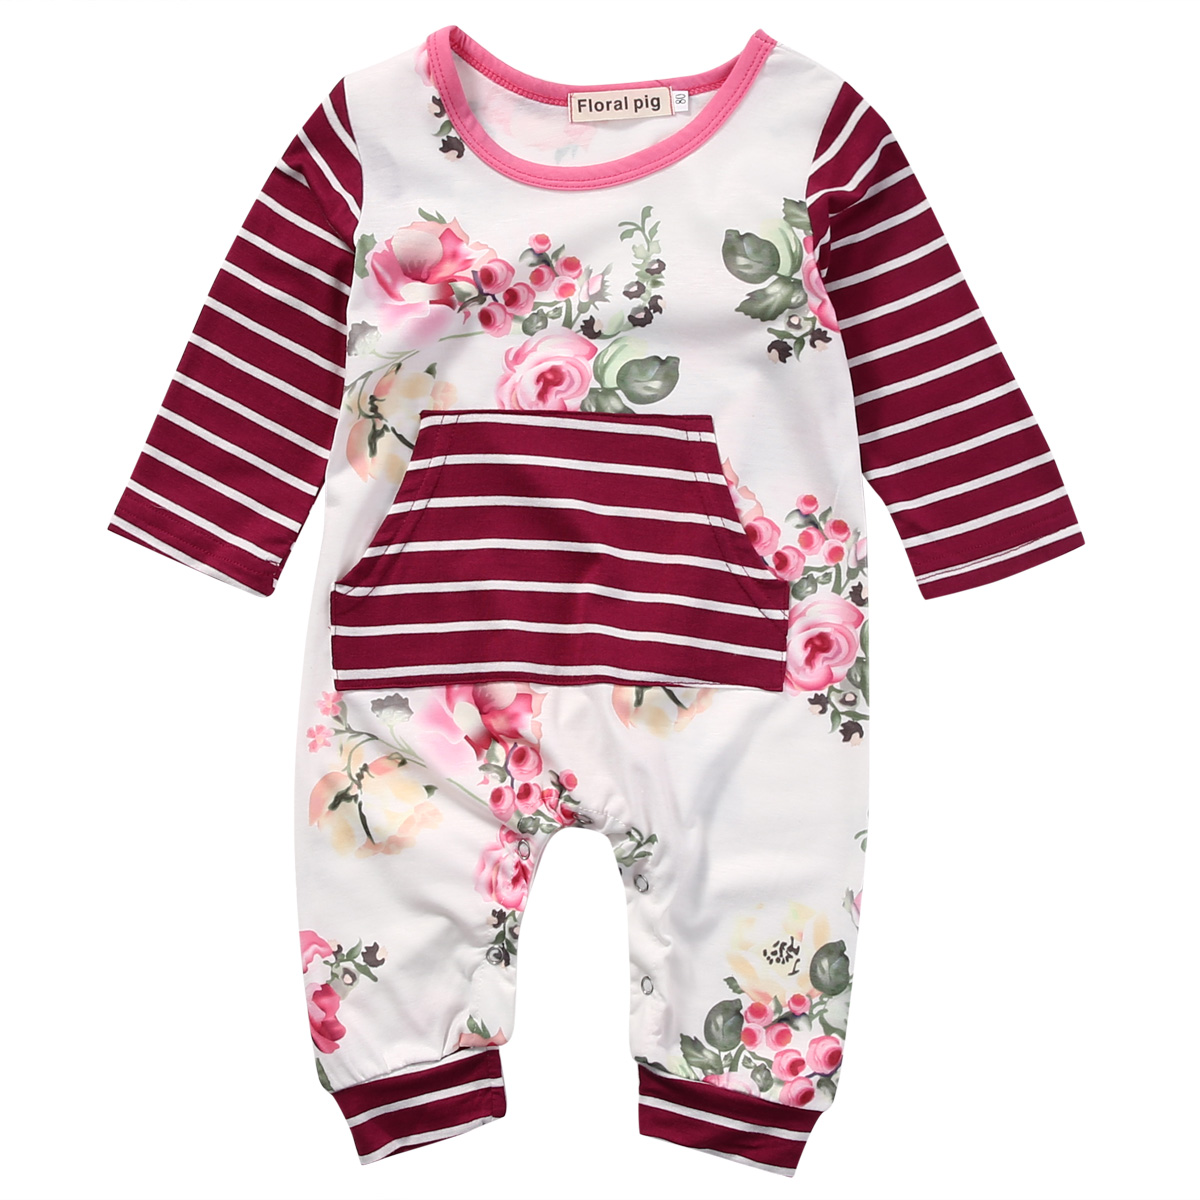 Pudcoco 2017 Floral Newborn Baby Romper Infant Bebes Boy Girl Clothes Long Sleeve Newborn Jumpsuit One Pieces Outfit 0-18M